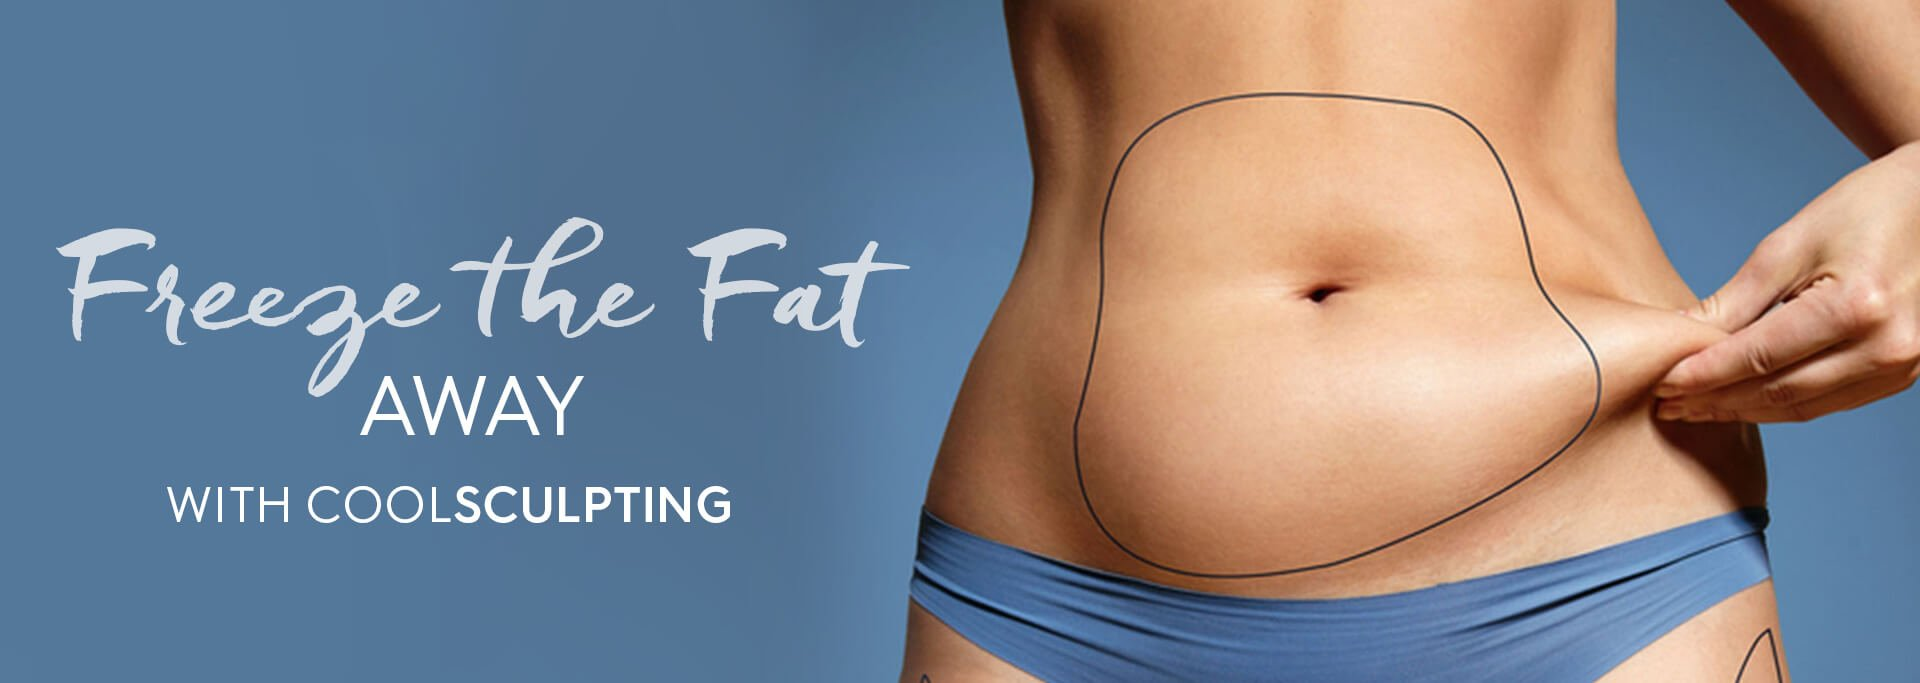 COOLSCULPTING COST IN MIAMI